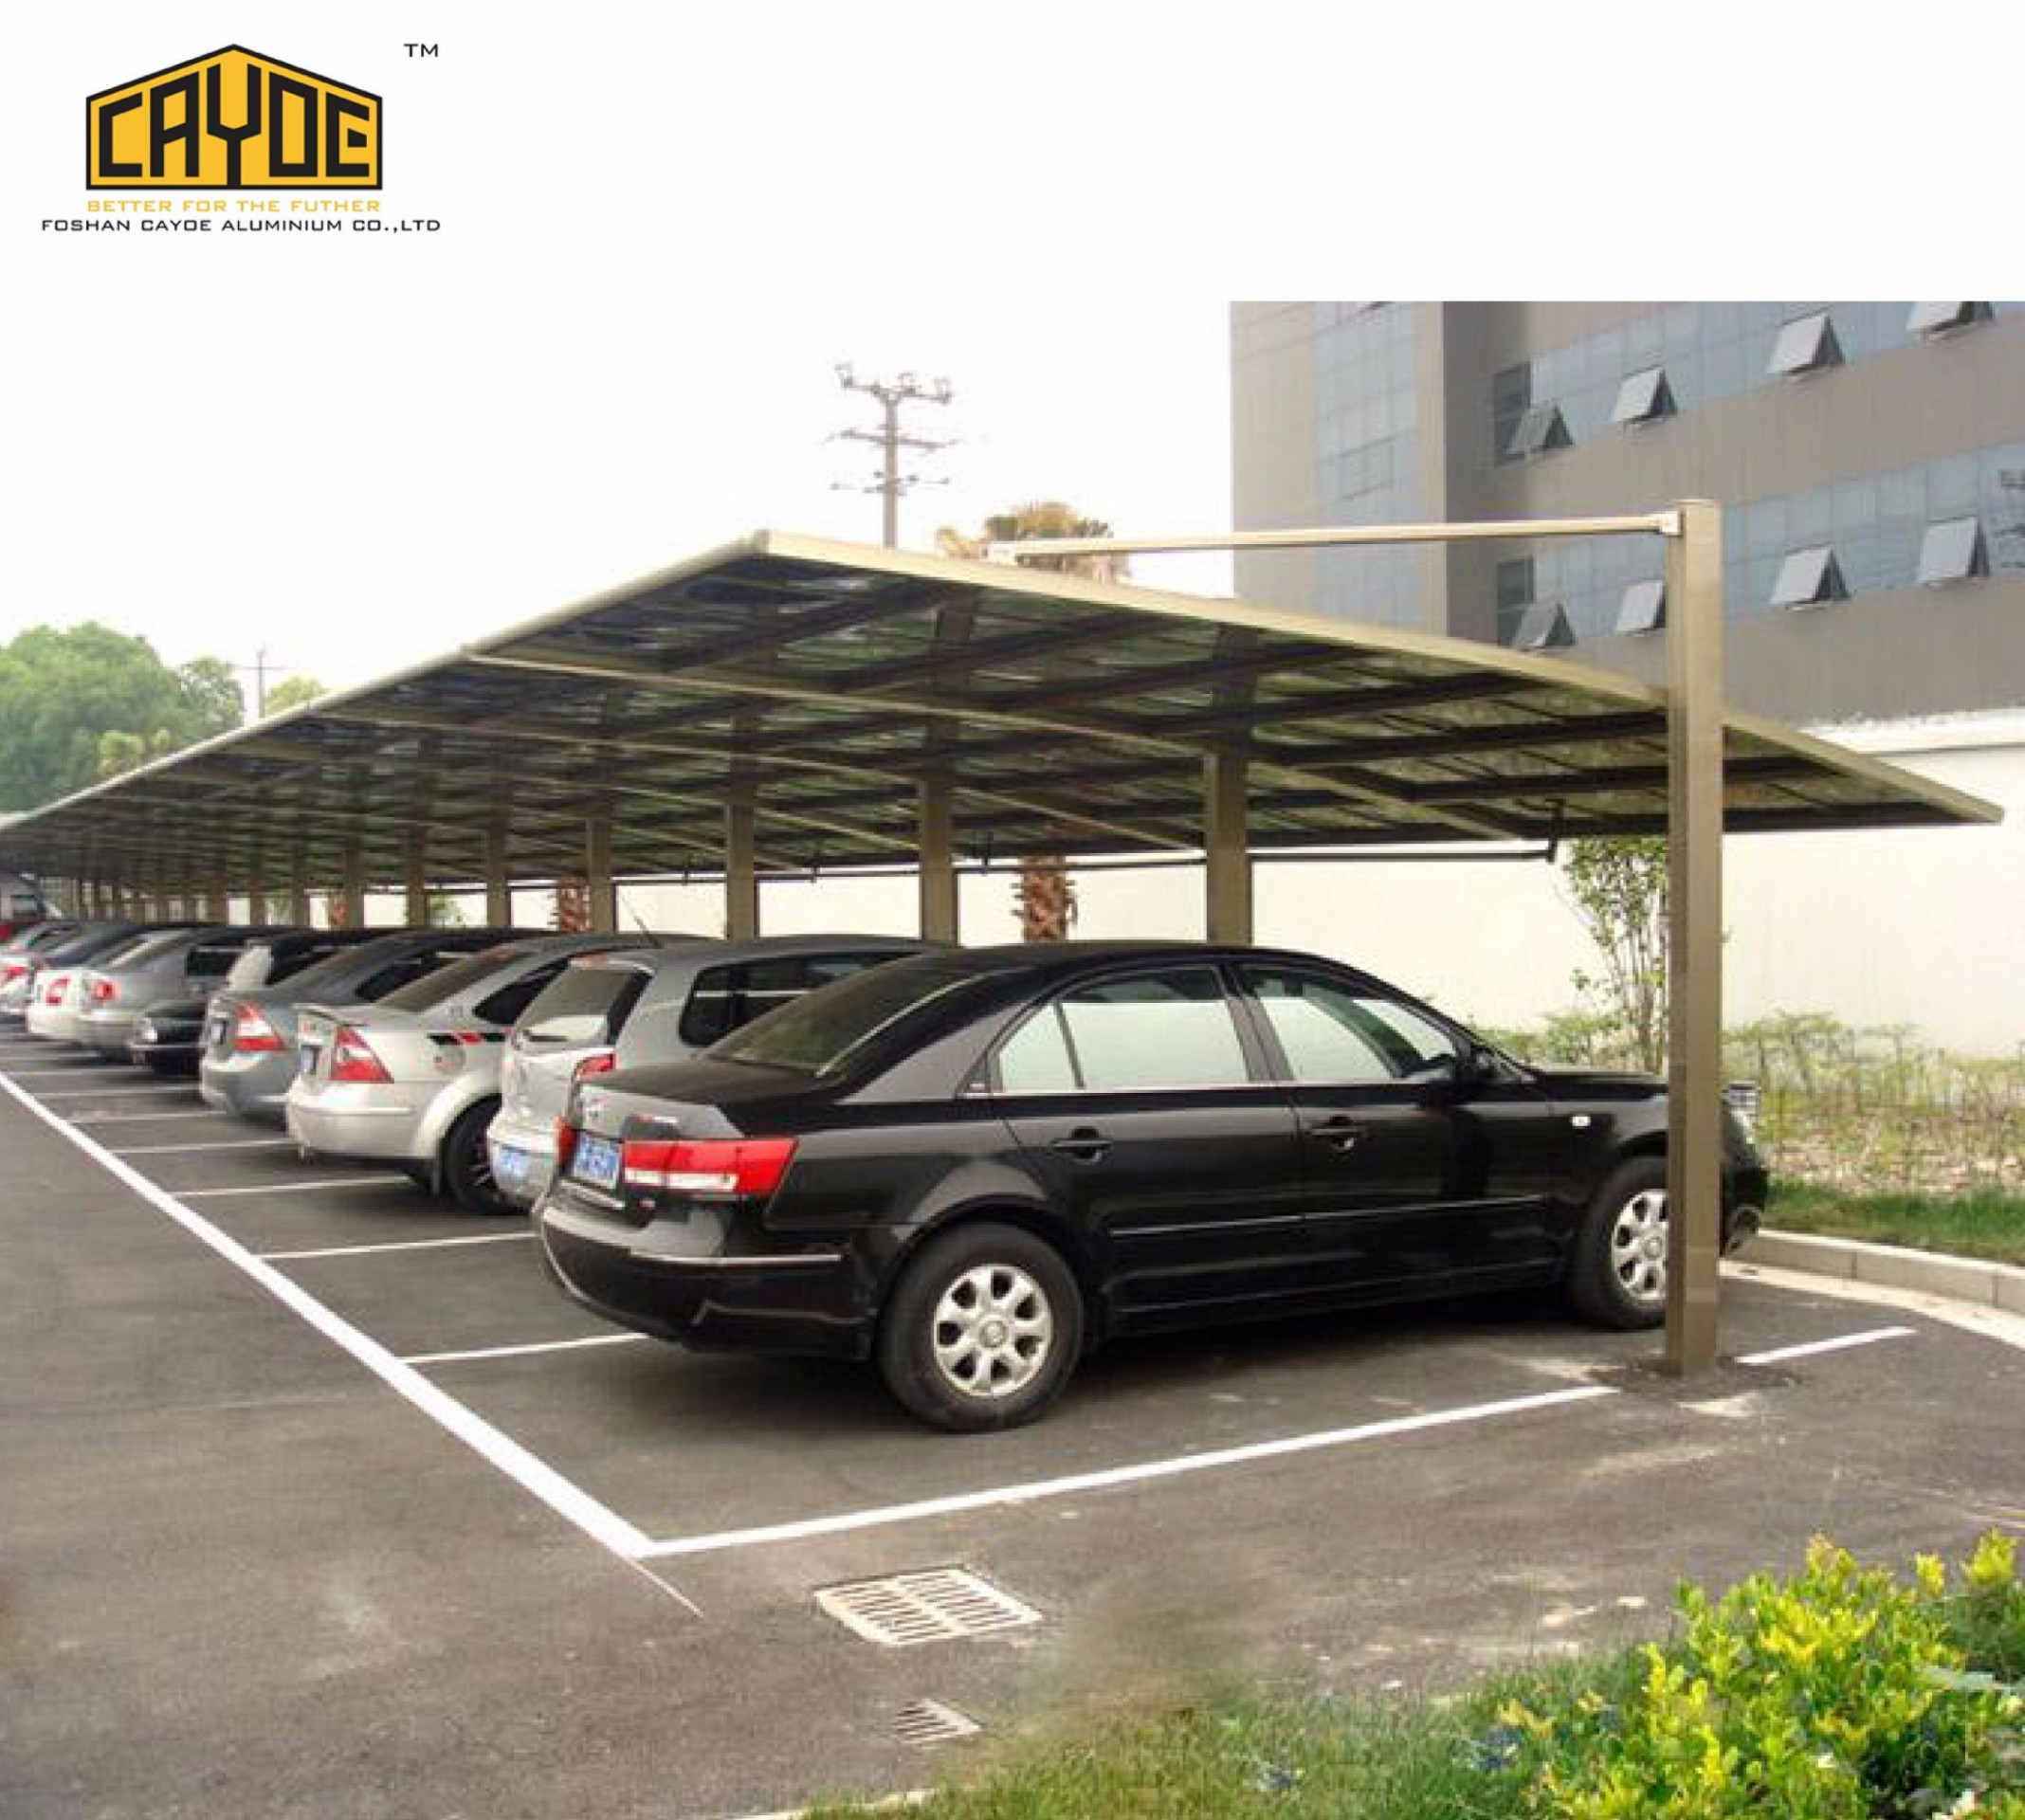 [Hot Item] Modern Design Snow Loading Polycarbonate Aluminum Carport Canopy